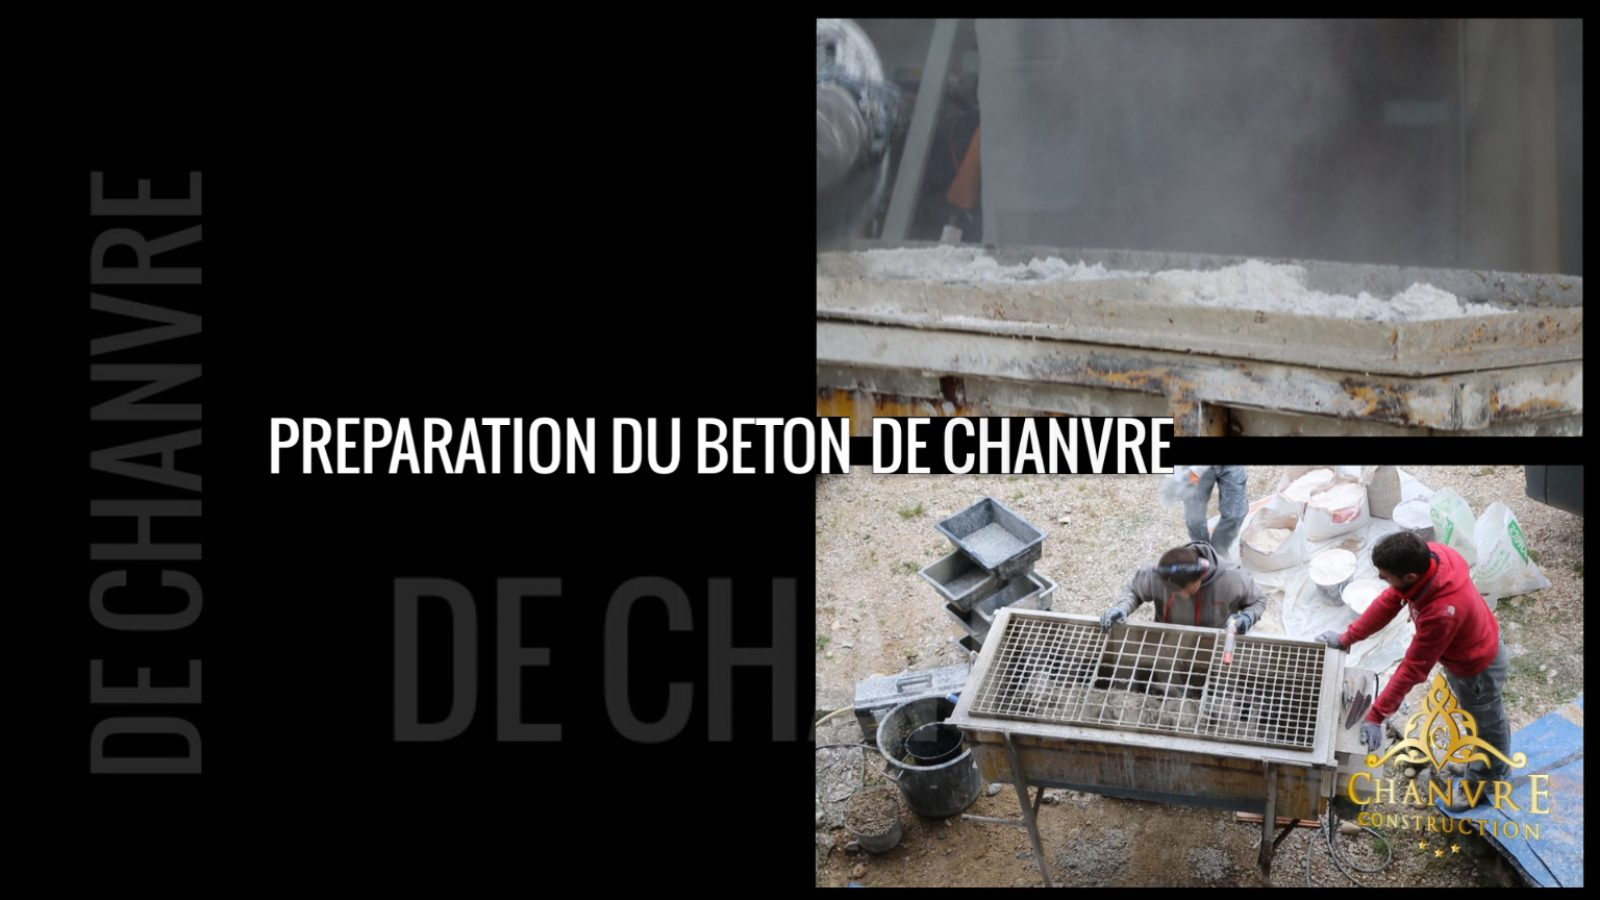 preparation du beton de chanvre